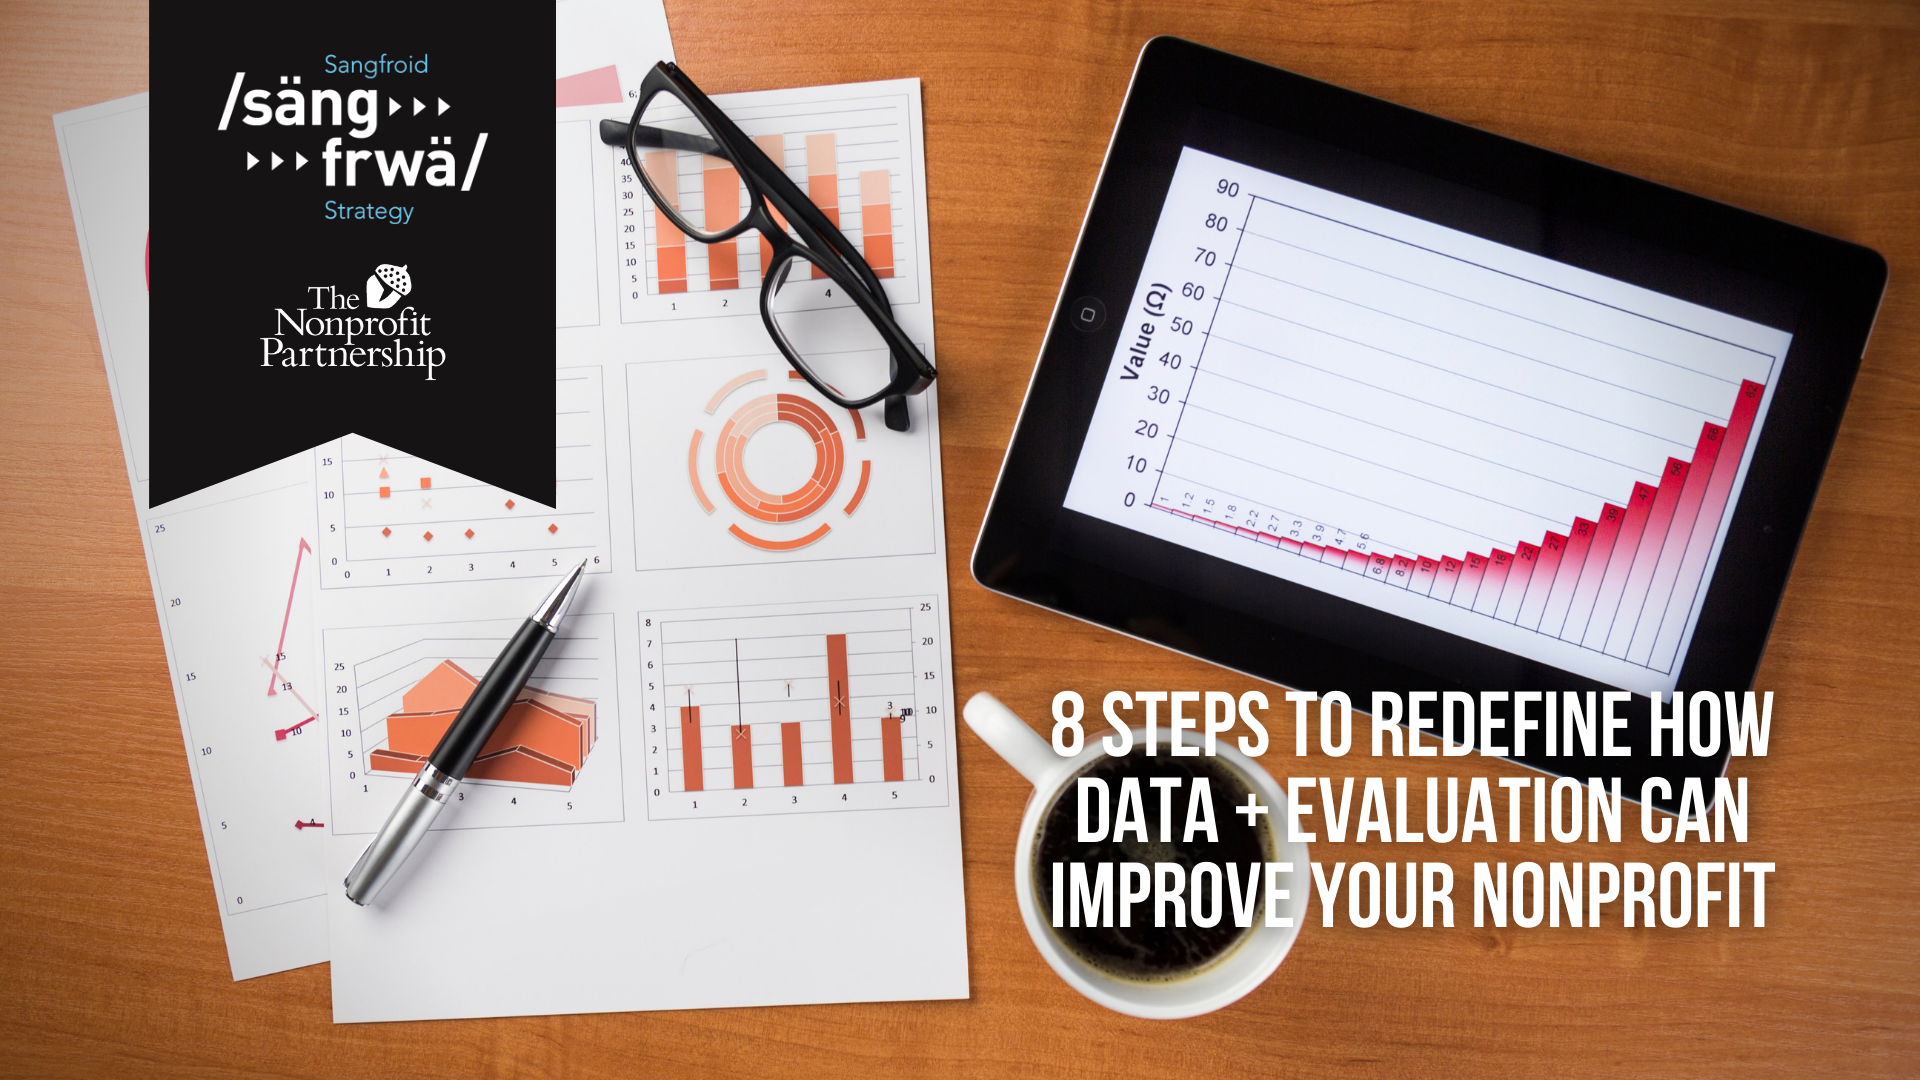 [Zoom Meeting] 8 Steps to Redefine How Data & Evaluation Can Improve Your Nonprofit